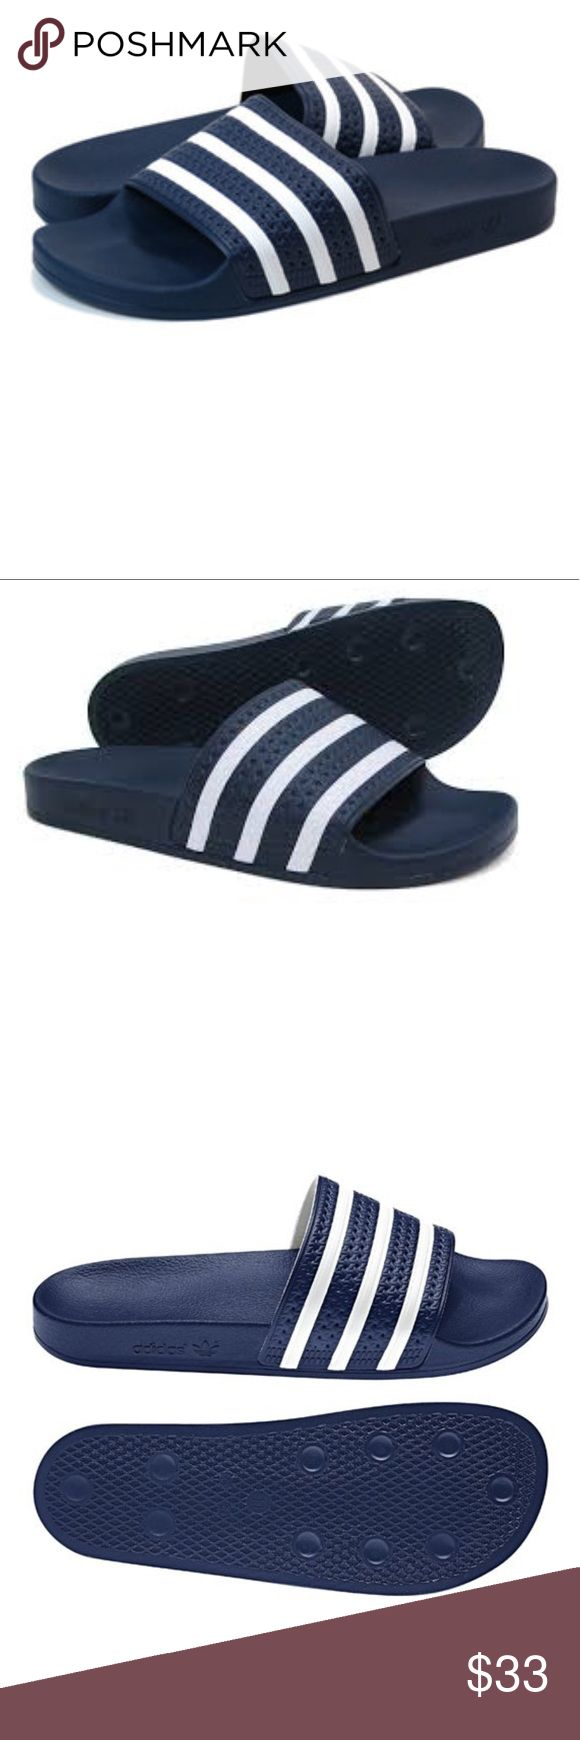 BNIB ADIDAS ADILETTE SLIDES NAVY WHITE Brand new, in box. Adidas Adilette Pool Slides. Navy/White Still available online for $45. Men's size 8 = Women's size 10. Think Spring!  Comes from a smoke free home. Bundle & save! adidas Shoes Sandals & Flip-Flops